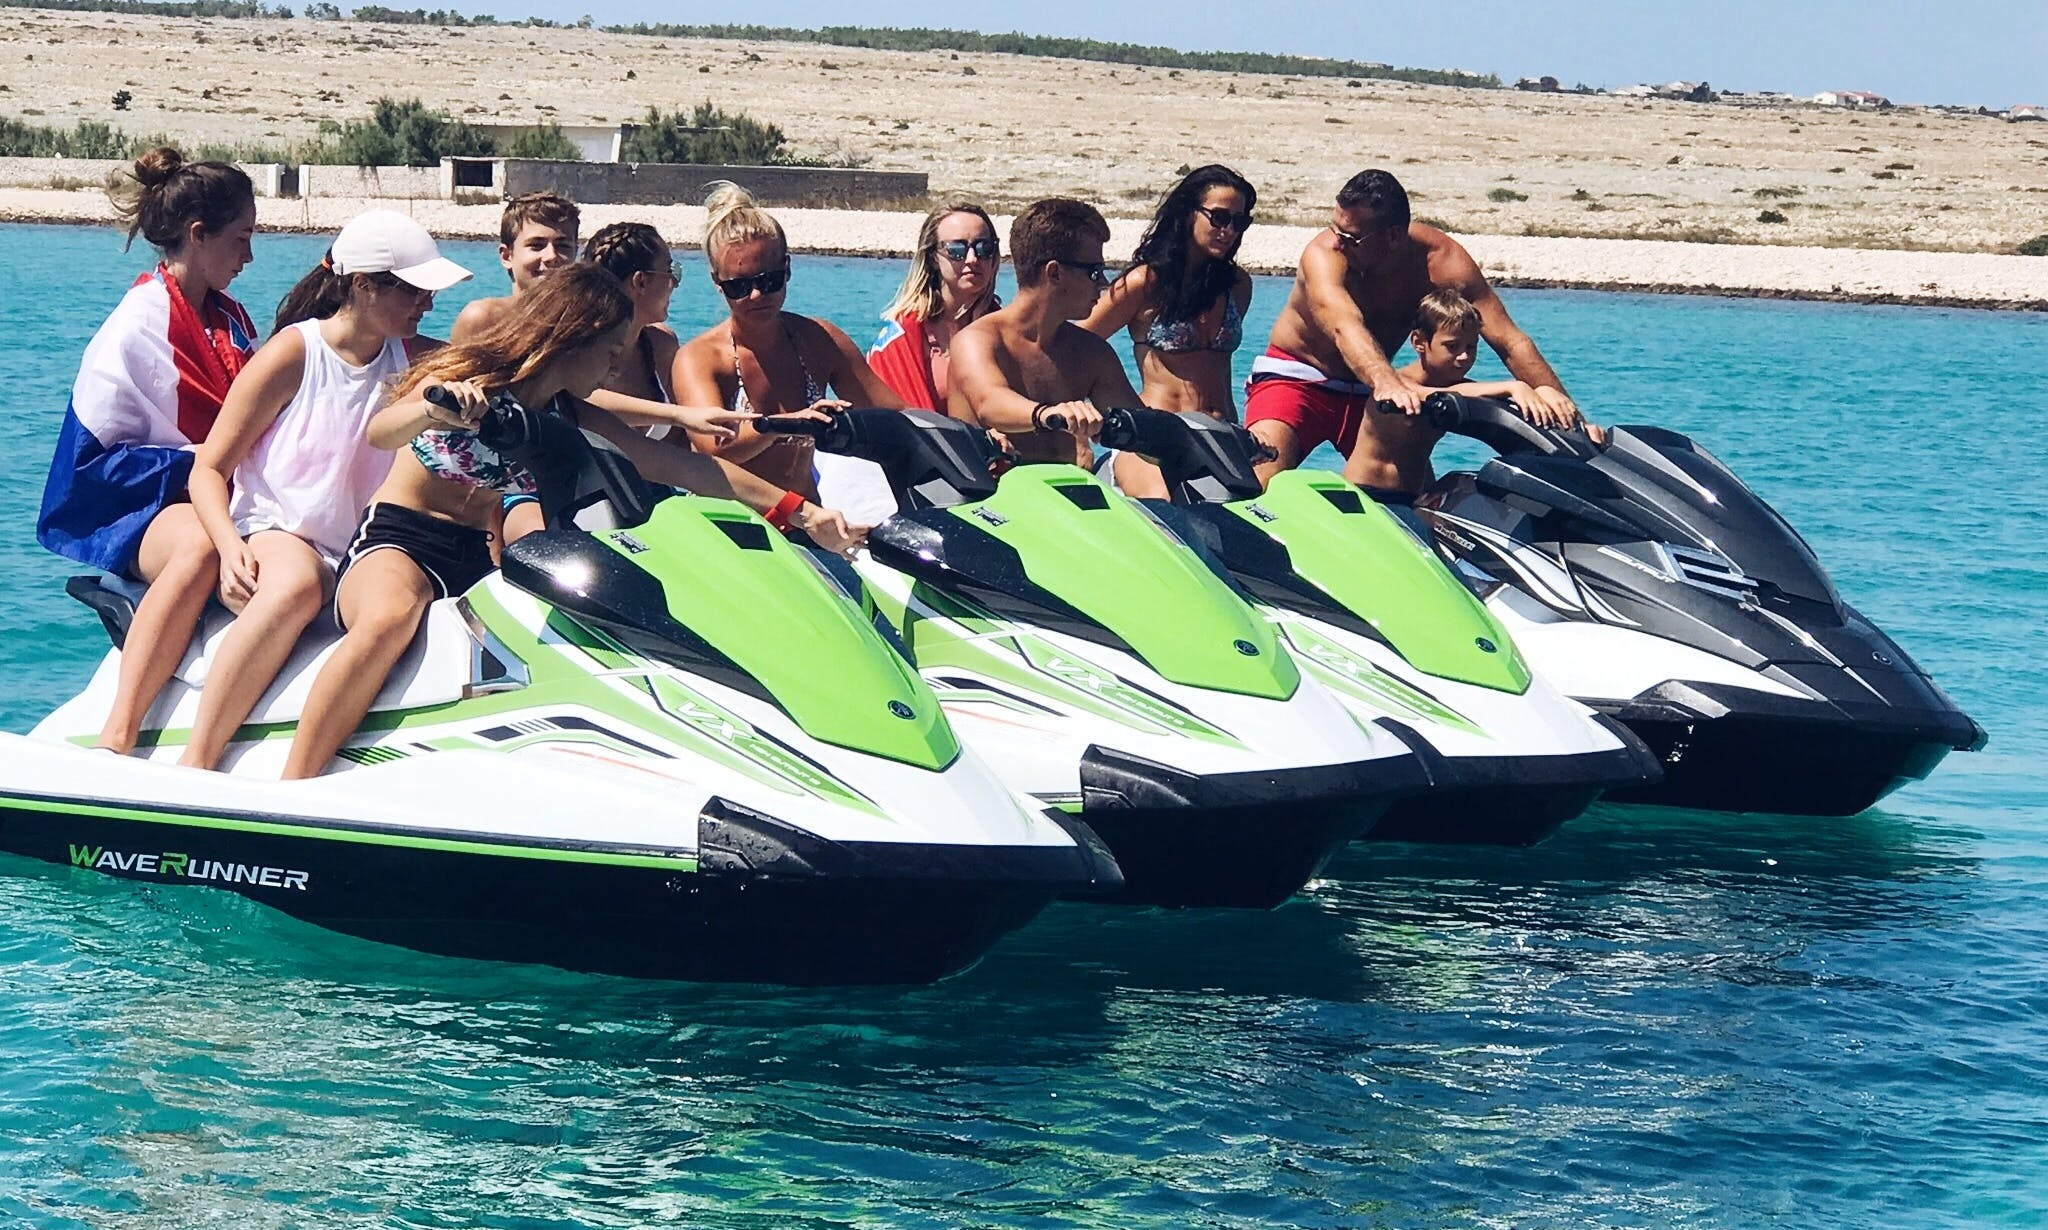 Jet Ski Rental for 2 People in Ražanac, Croatia